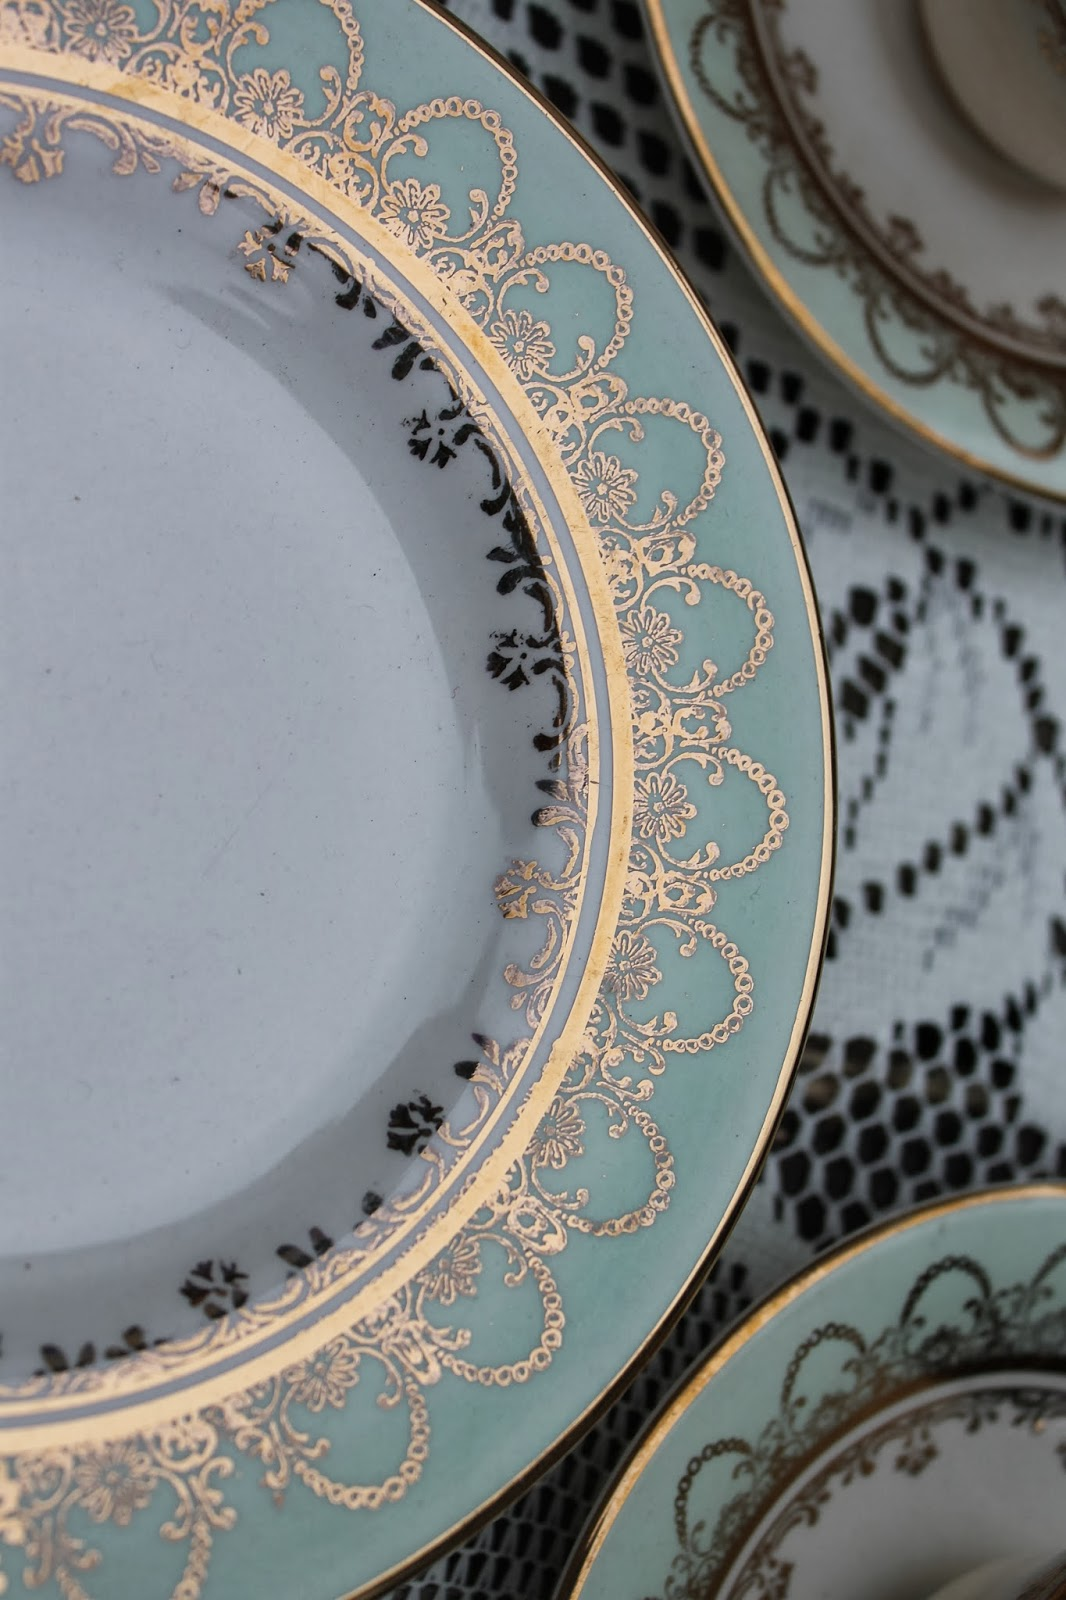 The plates ... & made in ireland | Thrifty Amos